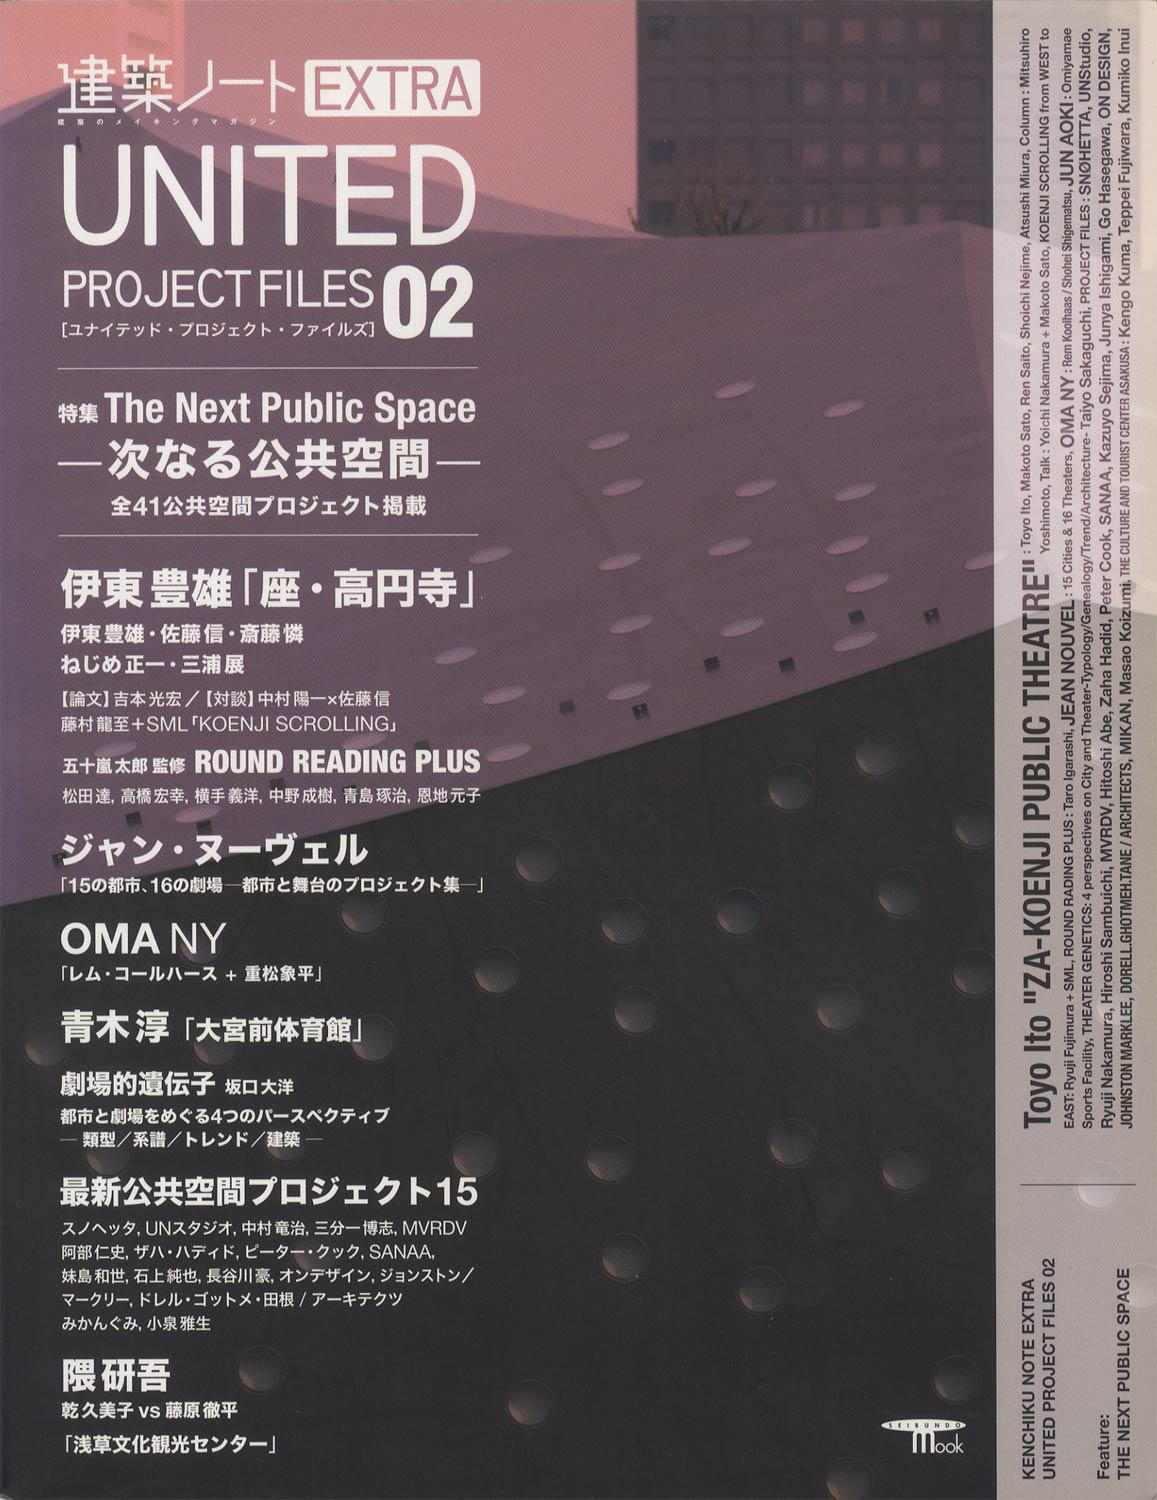 UNITED PROJECT FILES 02 建築ノート EXTRA